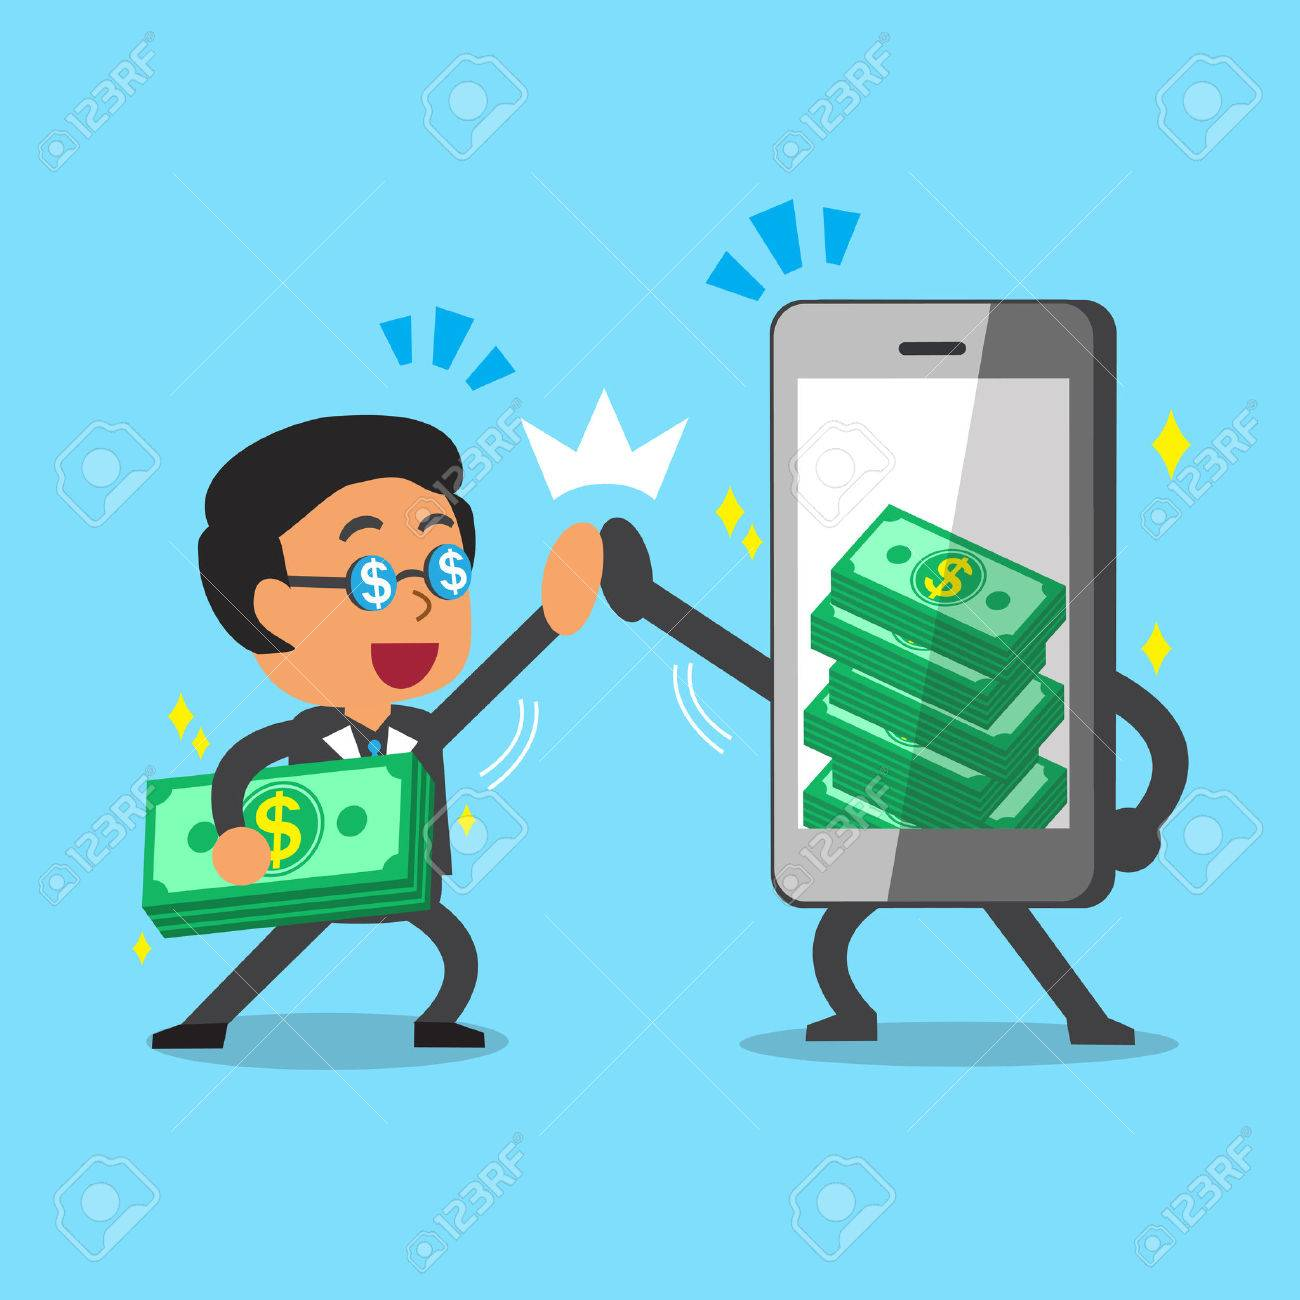 Cartoon Businessman And Smartphone Earning Money Royalty Free ...